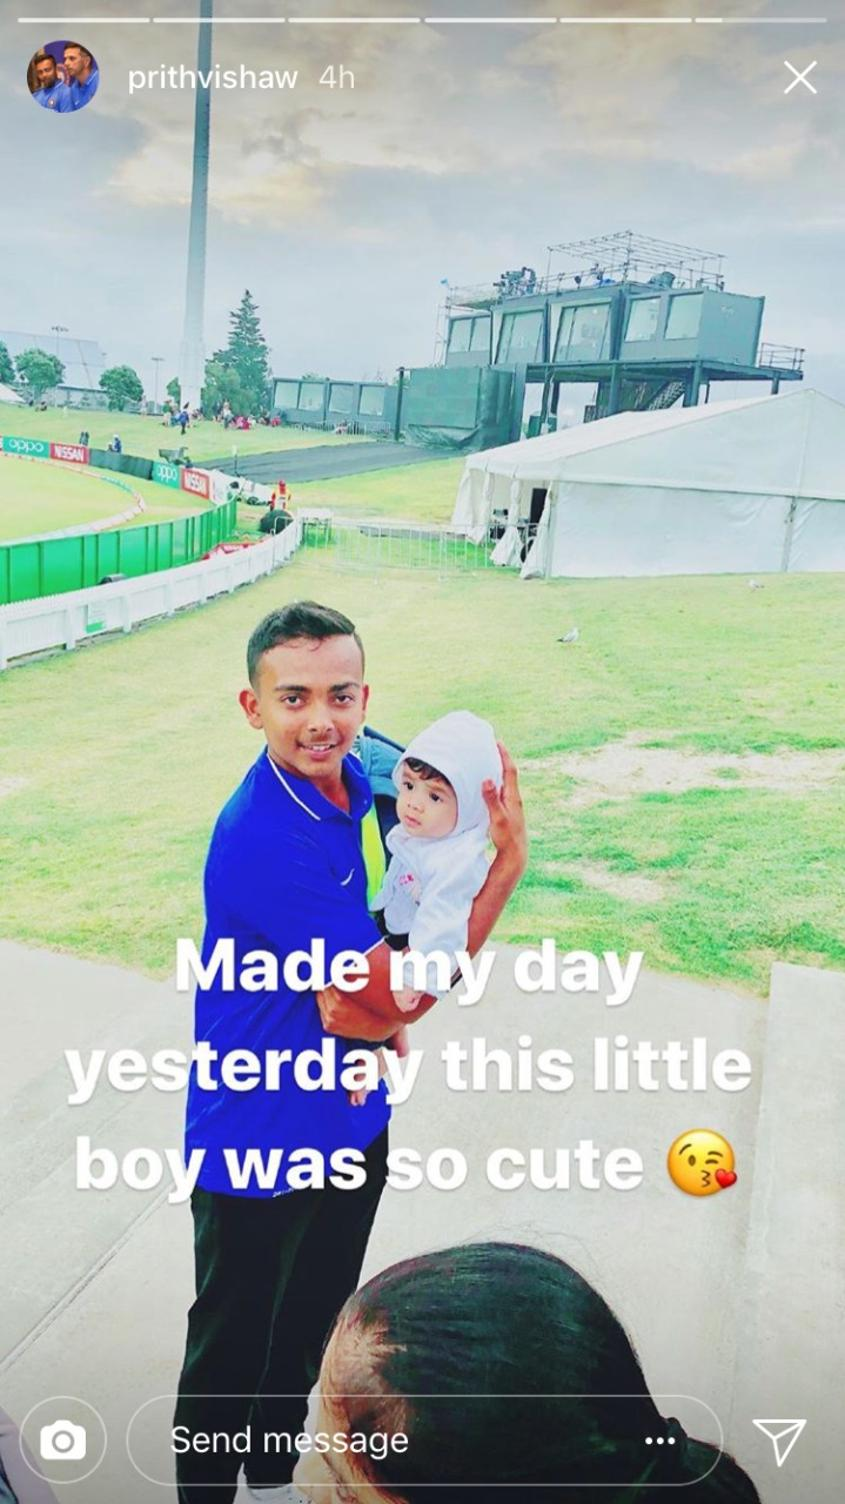 Prithvi Shaw's Instagram story showed his delight